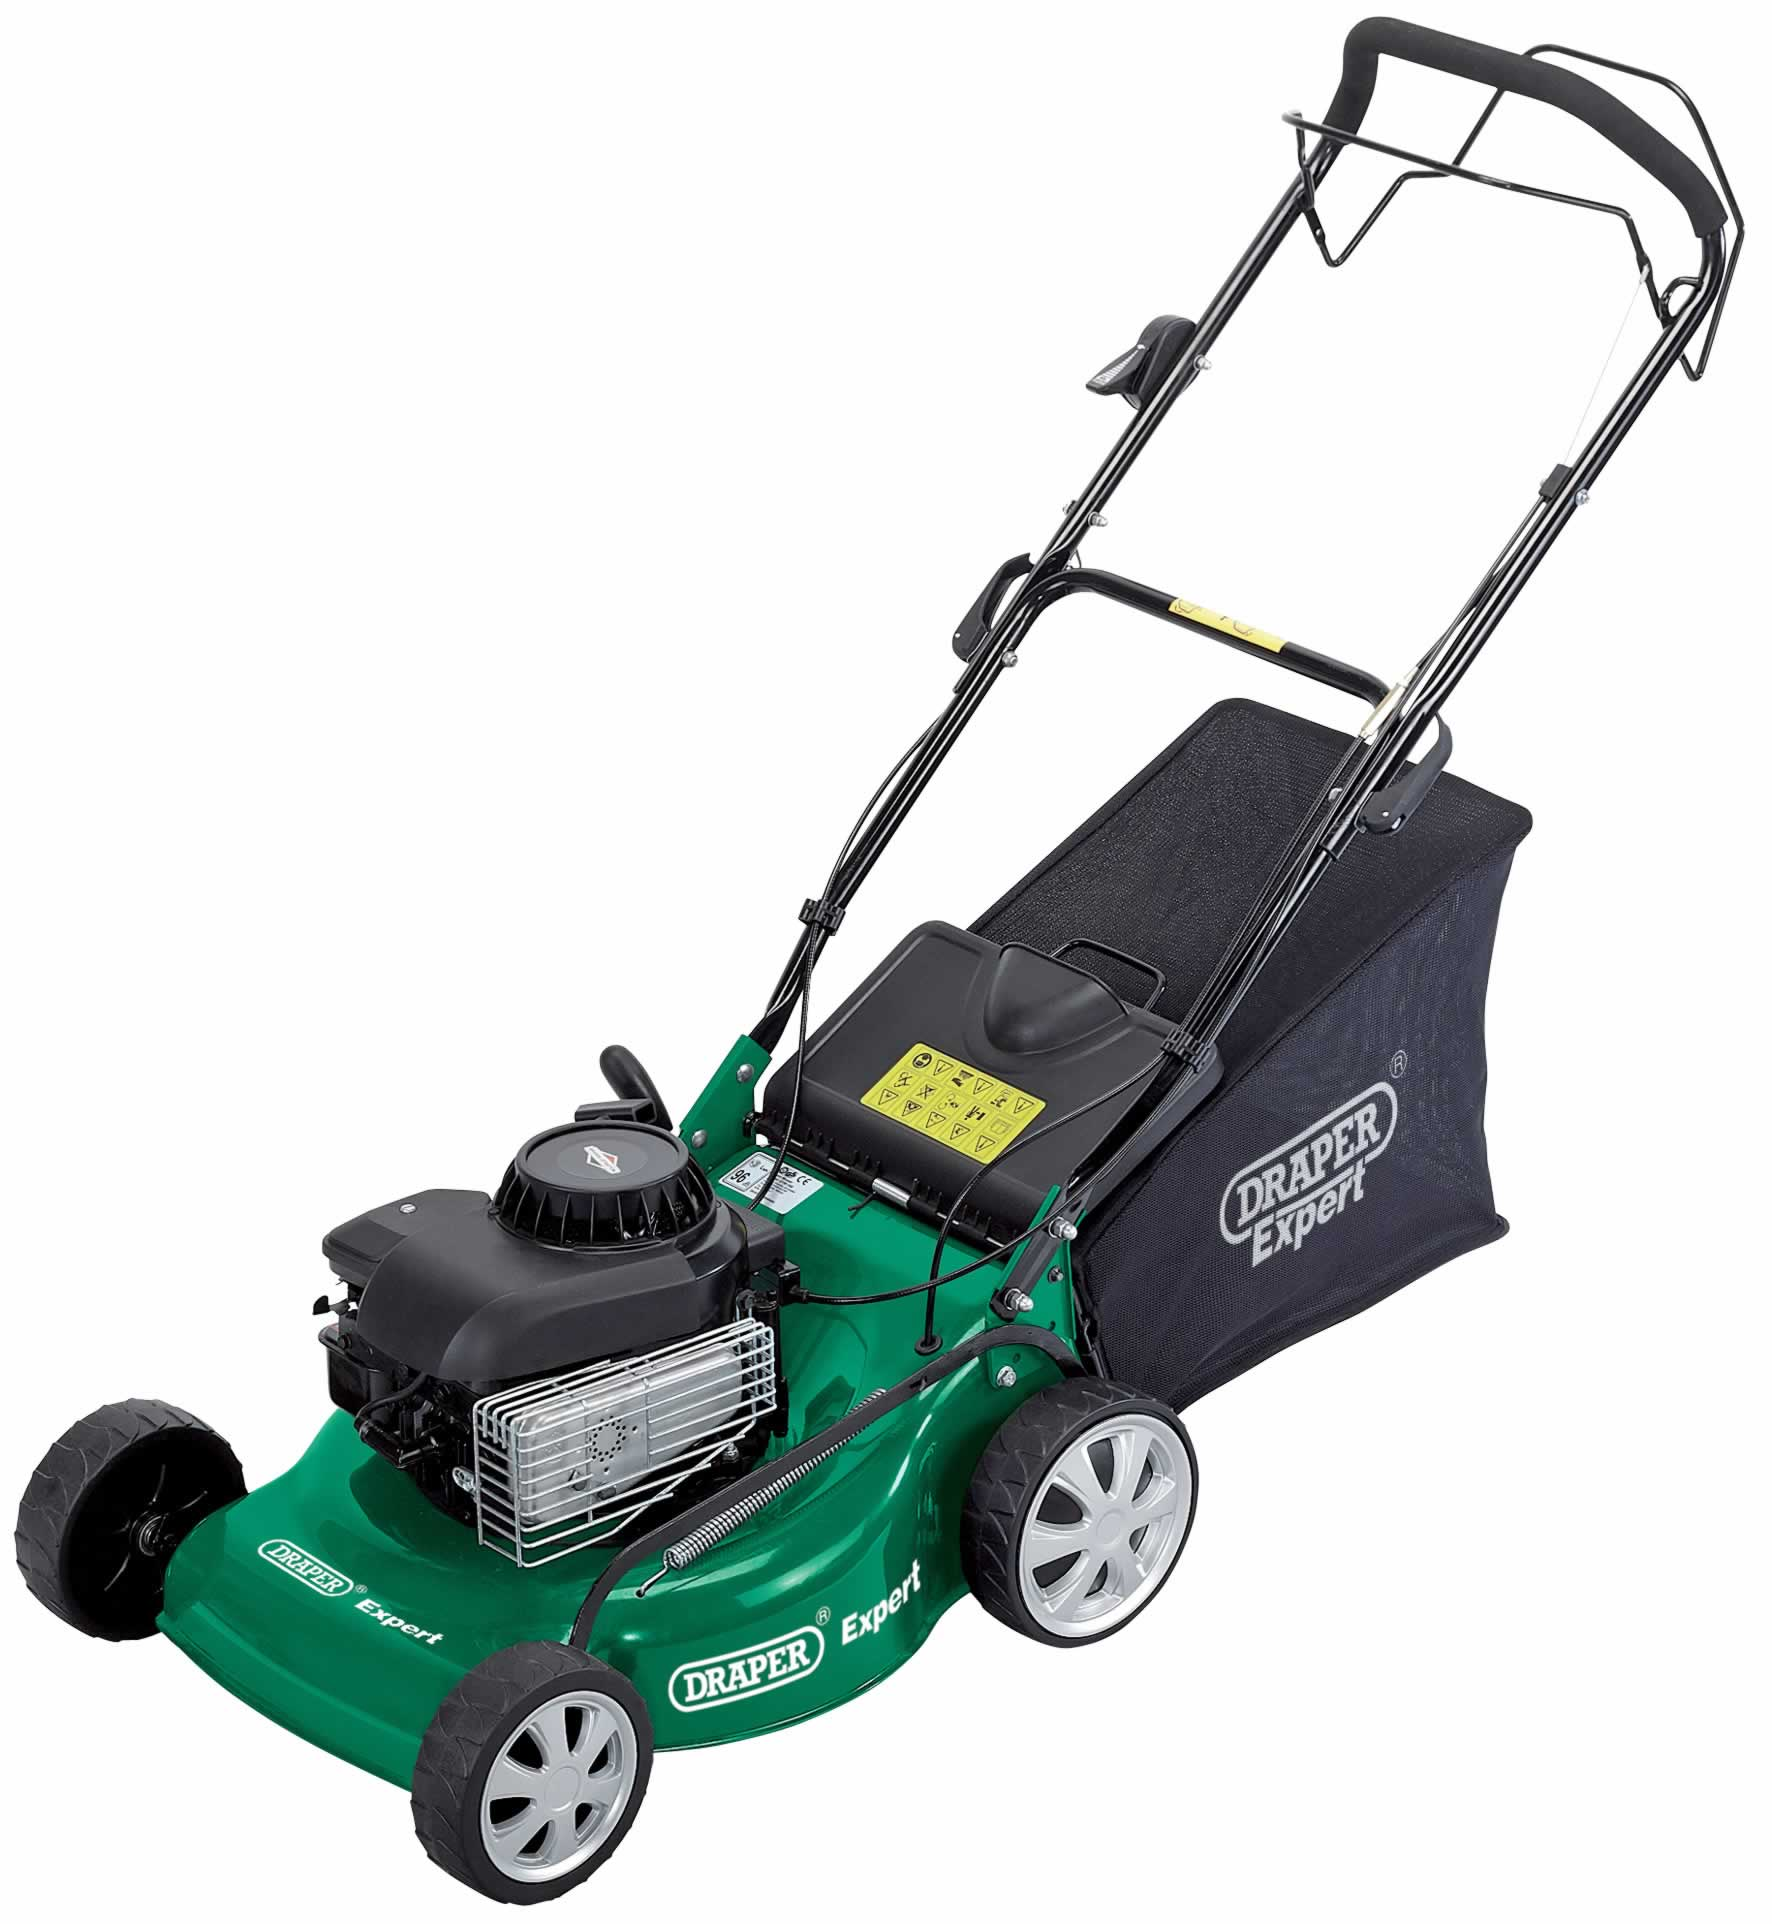 EXPERT 4HP 460MM PETROL MOWER WITH BRIGGS & STRATTON ENGINE